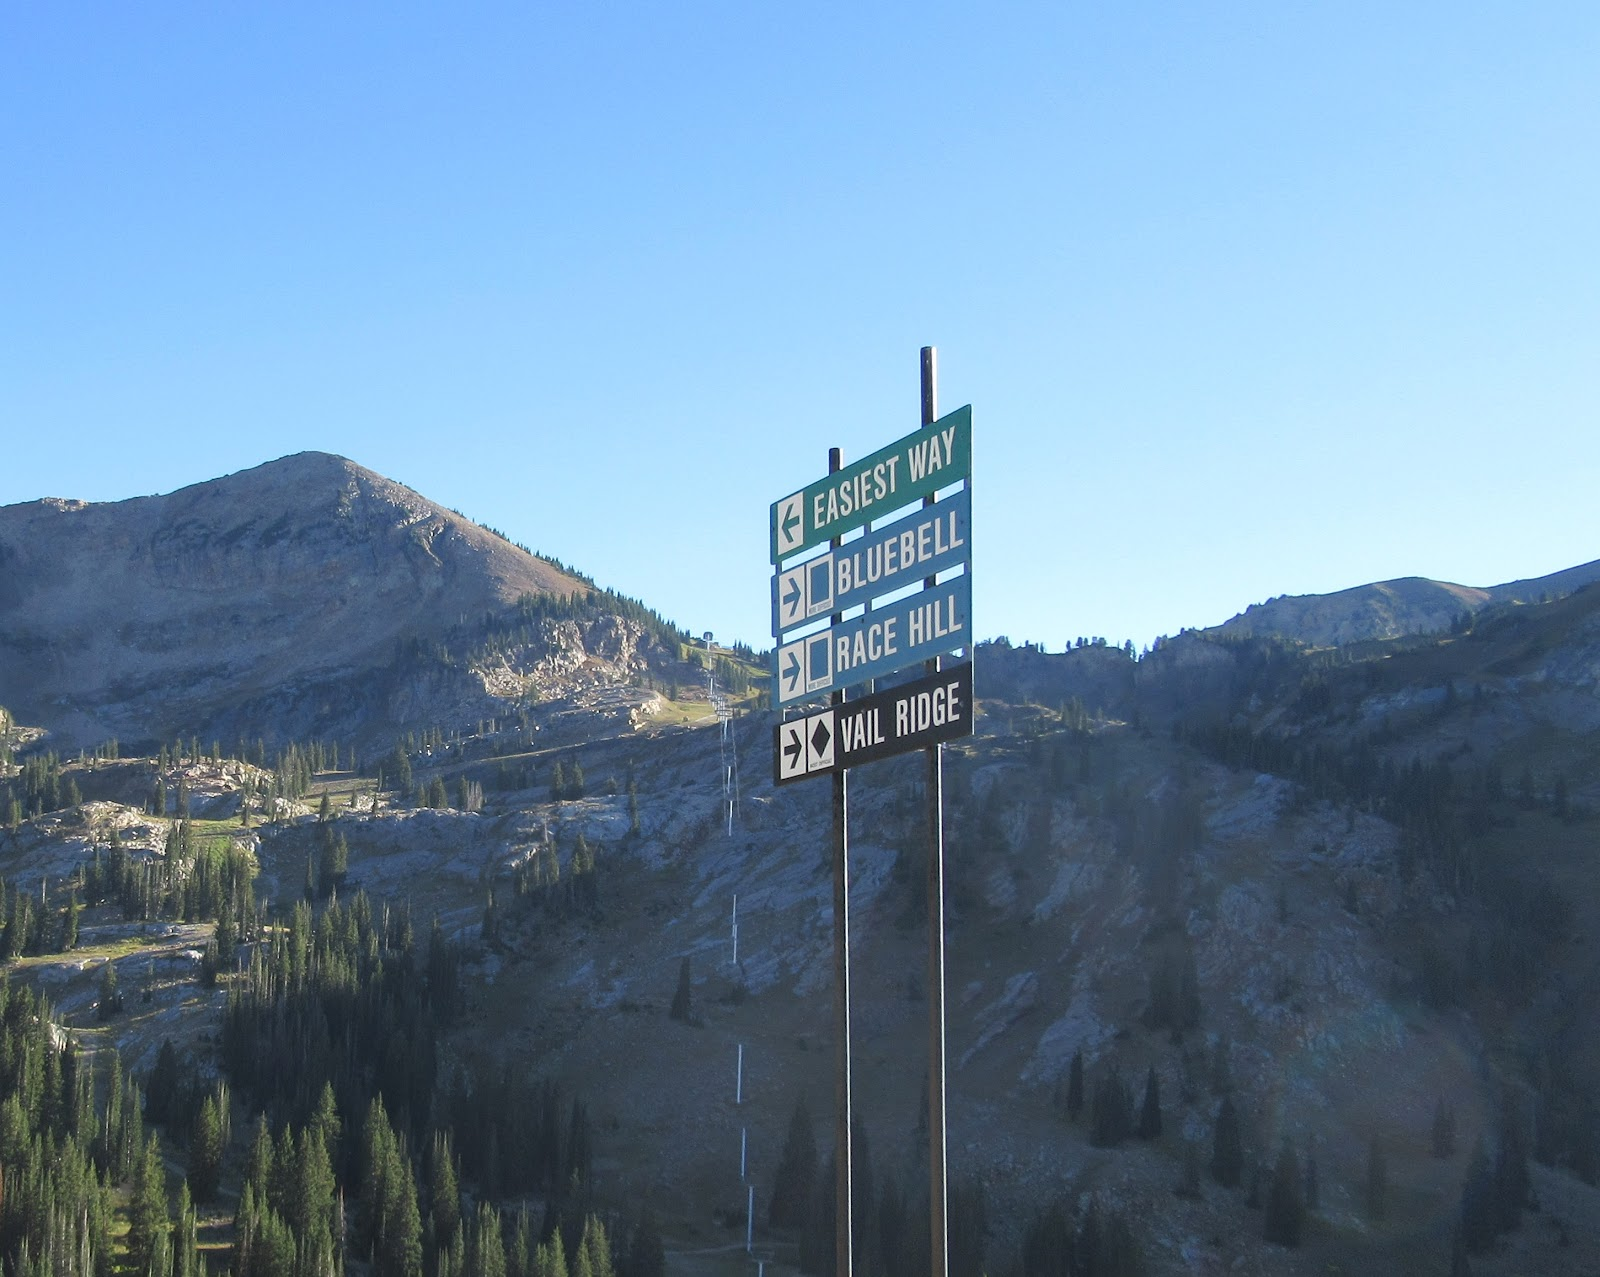 Ski run sign at the finish of the Little Cottonwood Canyon bicycle ride.